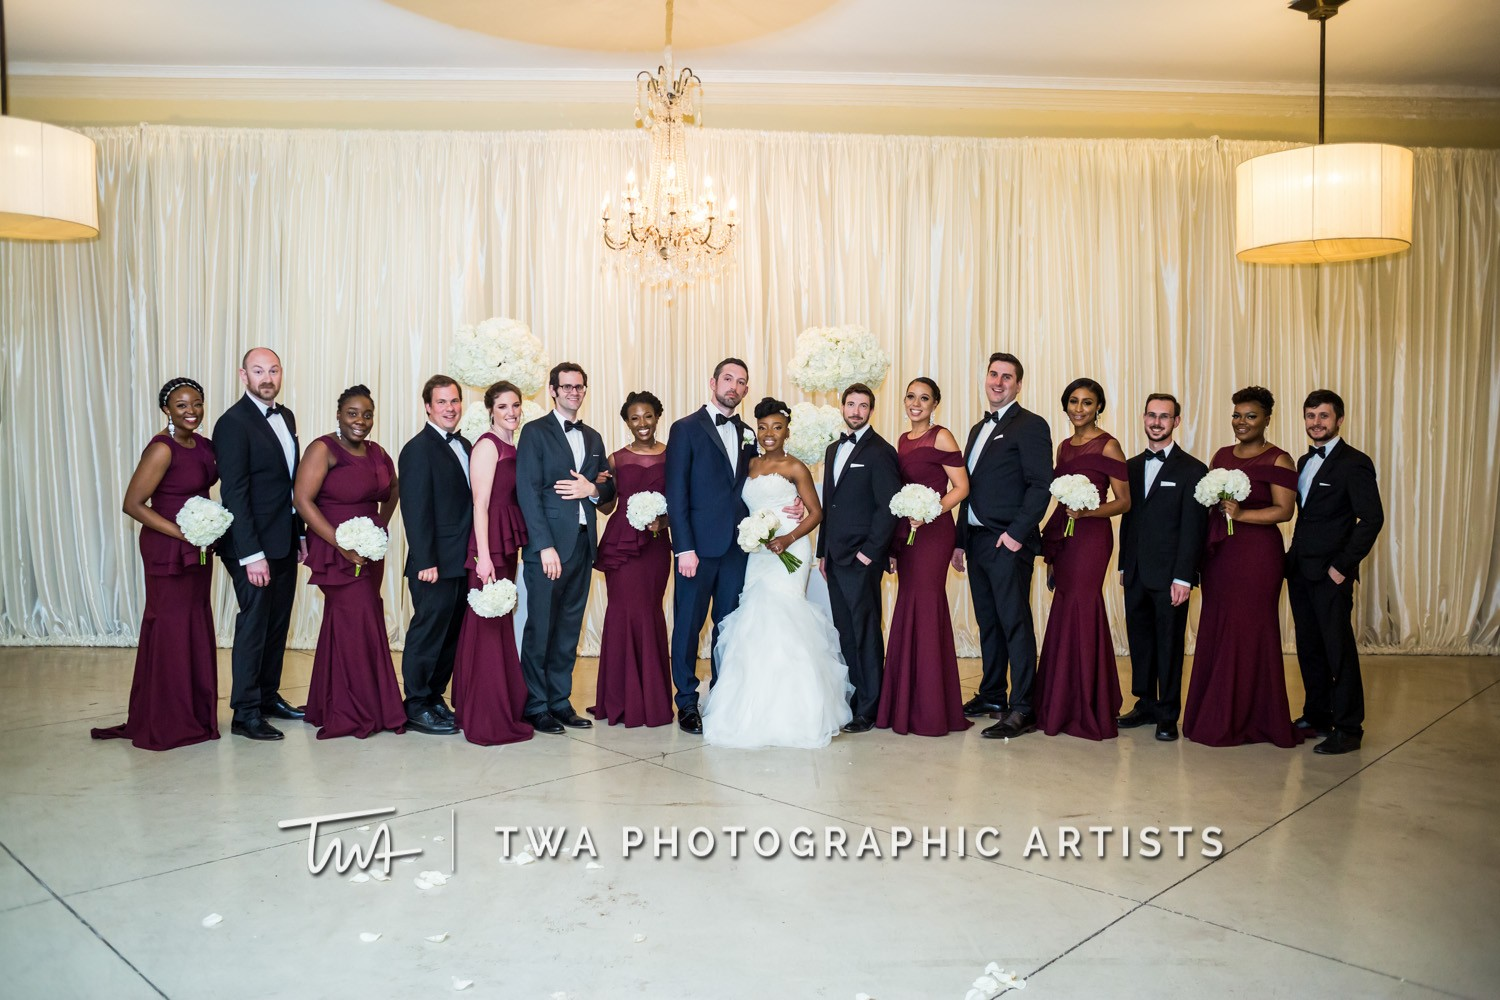 Chicago-Wedding-Photographer-TWA-Photographic-Artists-Stan-Mansion_Ityavyar_Oakley_MJ-0340-1